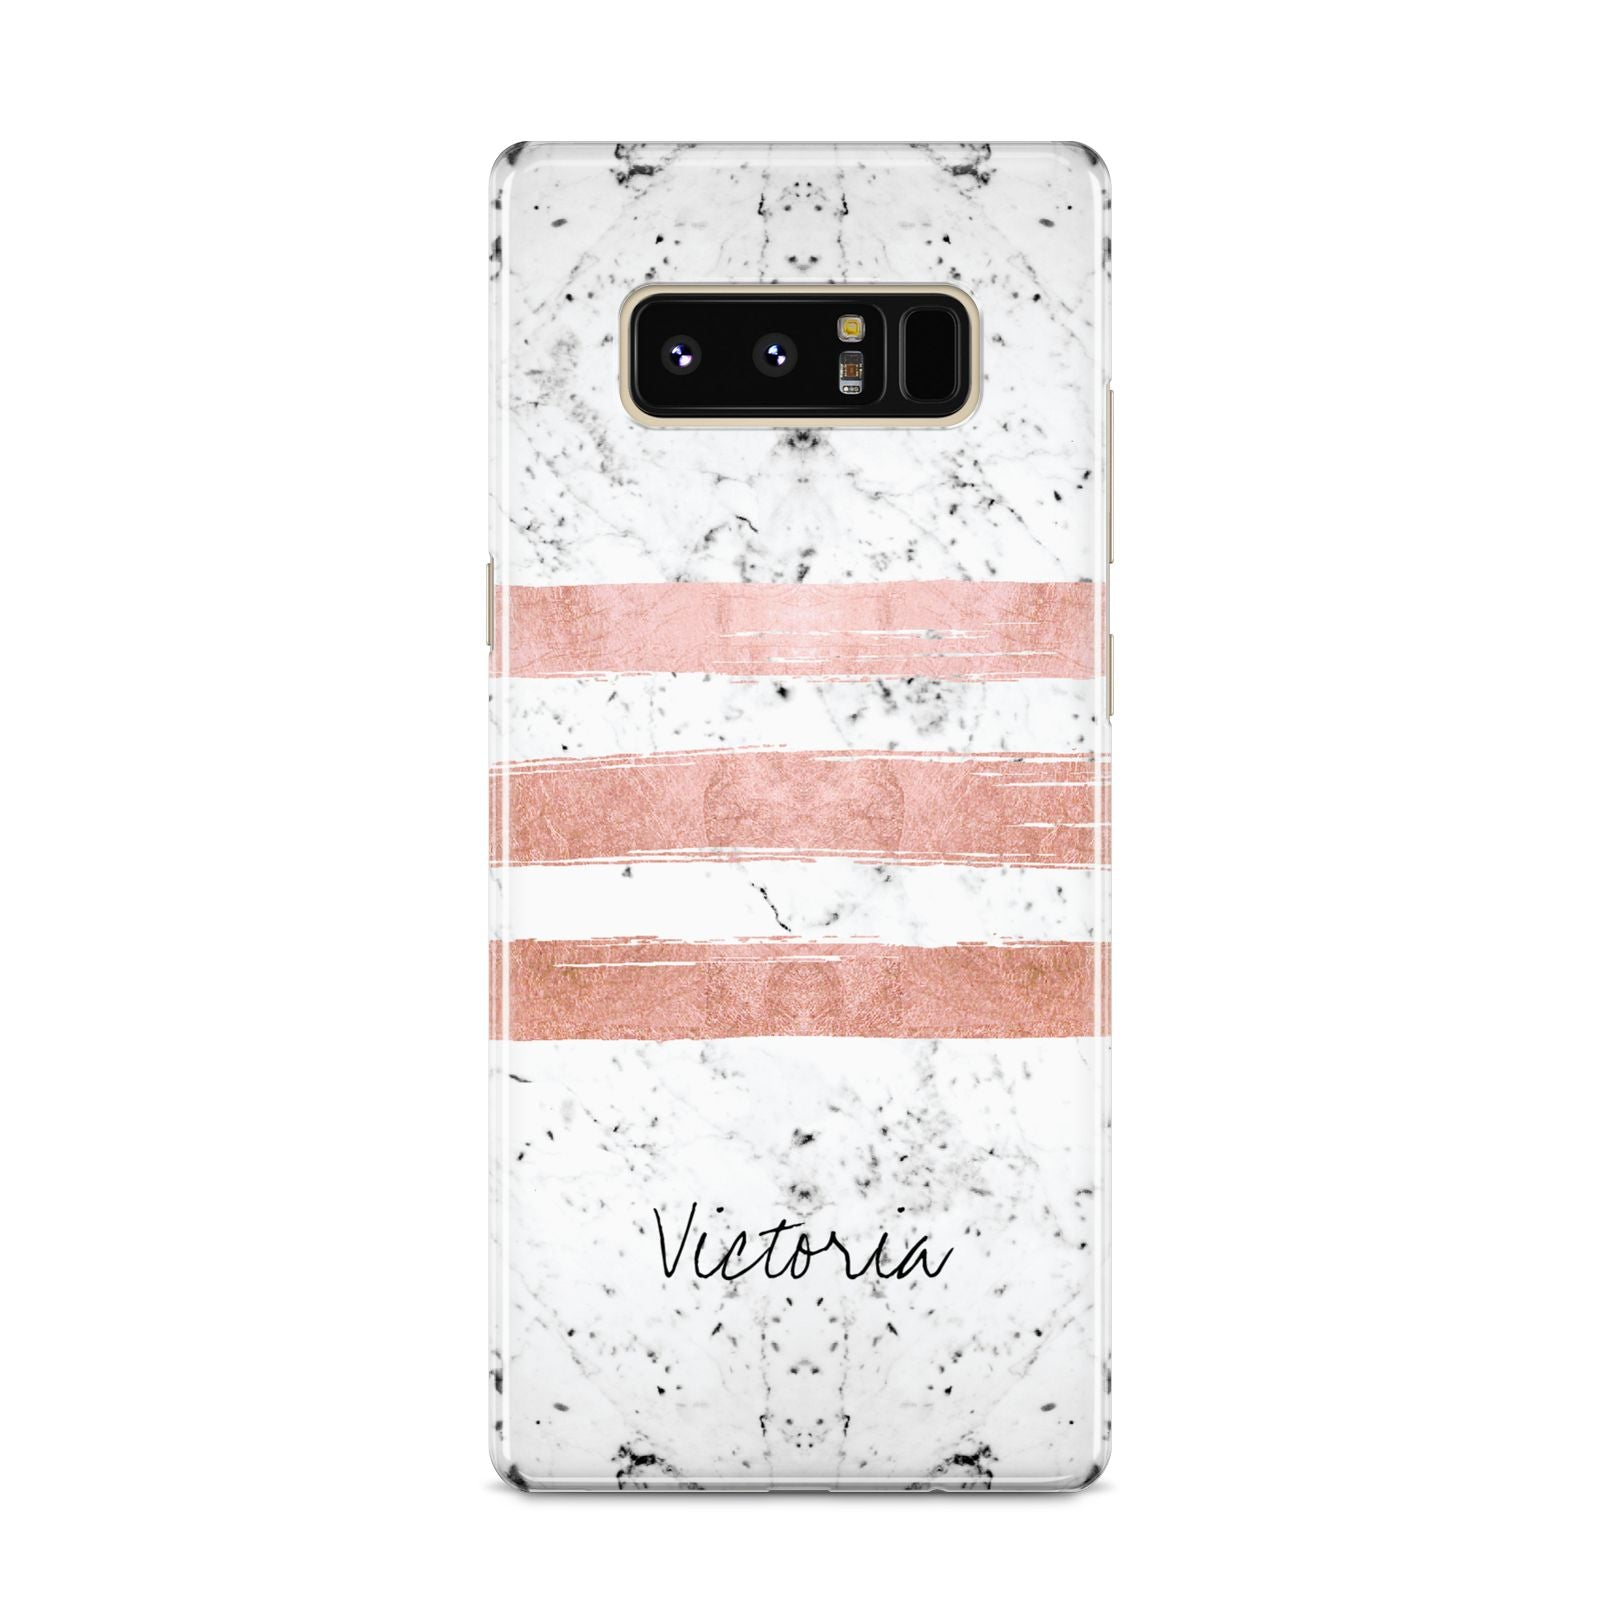 Personalised Rose Gold Brush Marble Initial Samsung Galaxy S8 Case